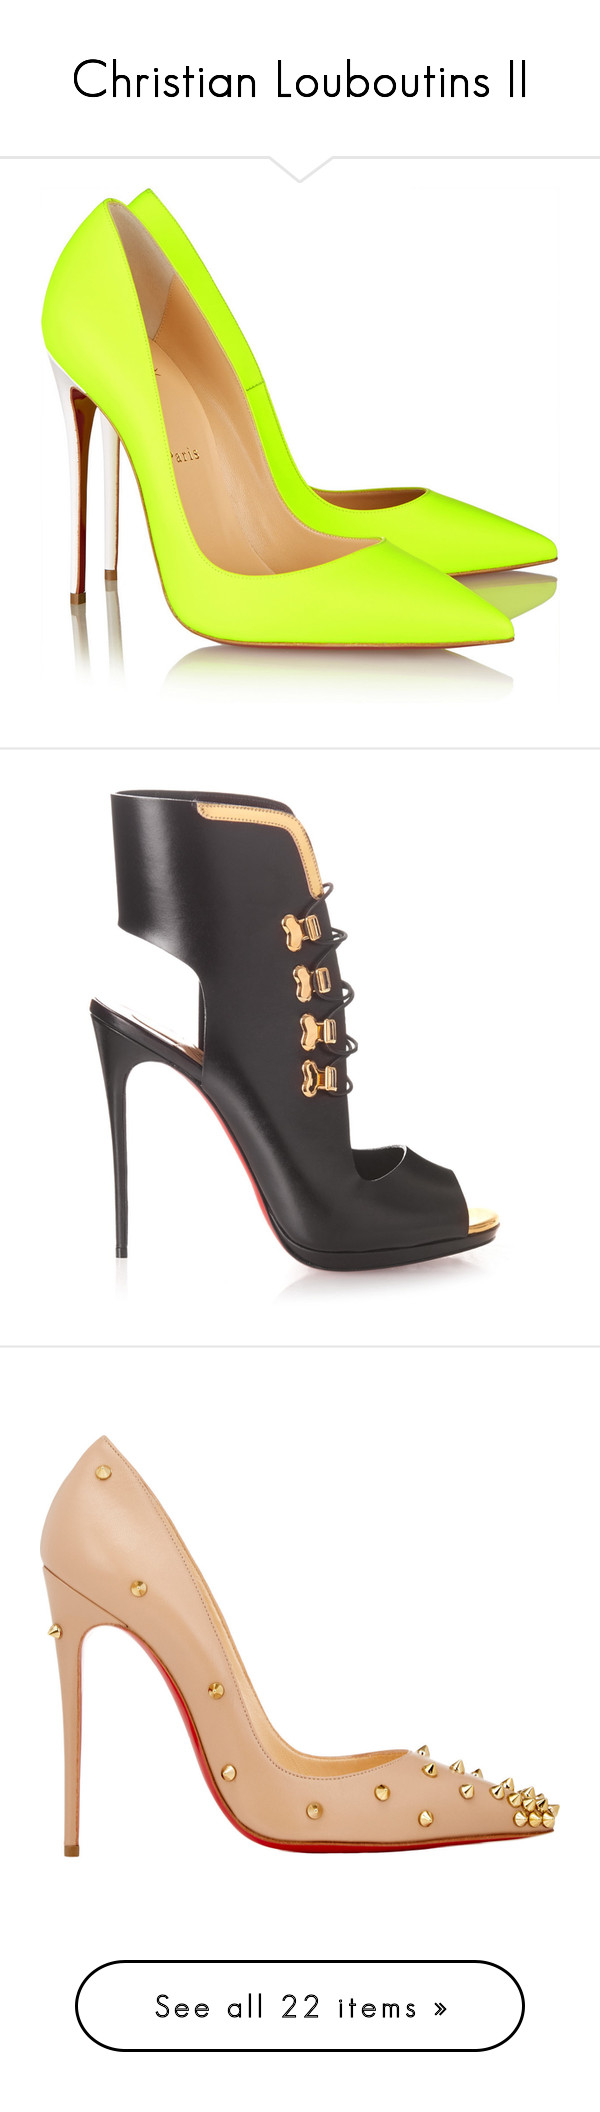 """""""Christian Louboutins II"""" by melanijames ❤ liked on Polyvore featuring shoes, pumps, heels, christian louboutin, sapatos, pointy-toe pumps, neon heels pumps, pointed toe high heel pumps, slip on shoes and leather shoes"""